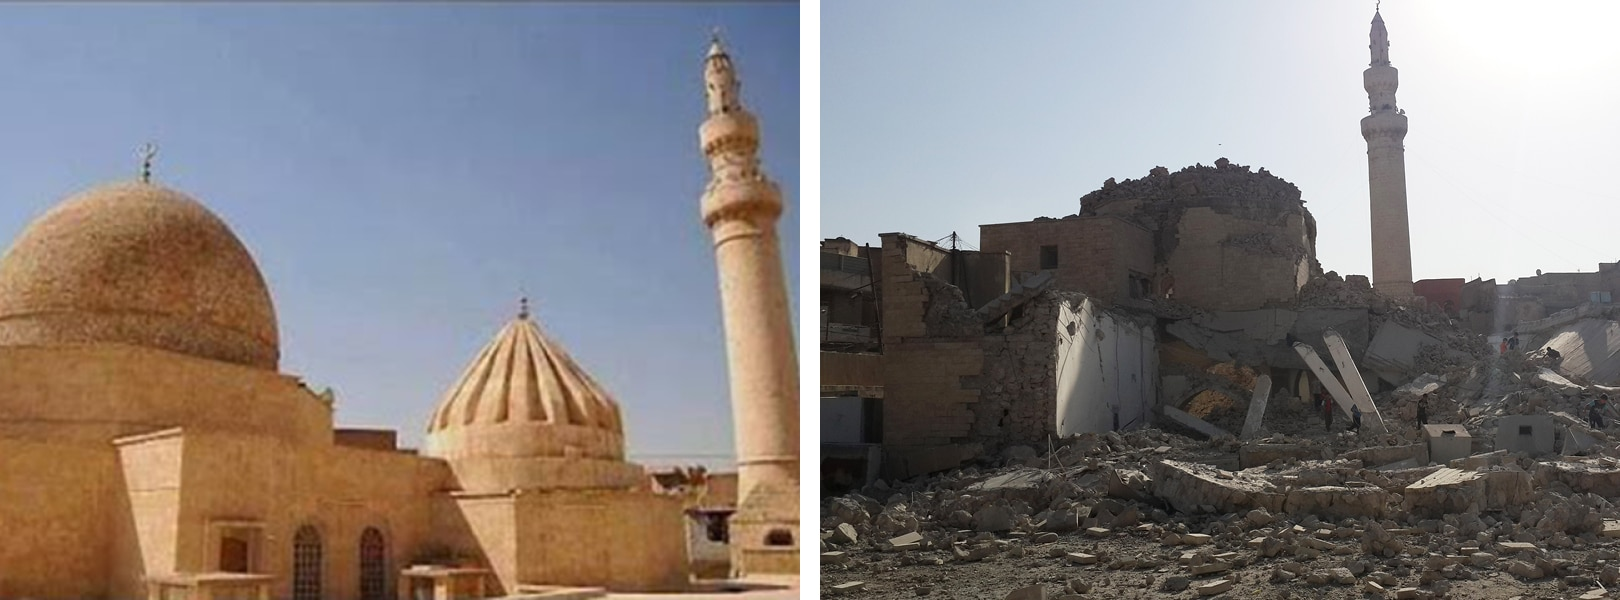 https://share.america.gov/wp-content/uploads/2014/09/5Islamic_beforeafter2.png